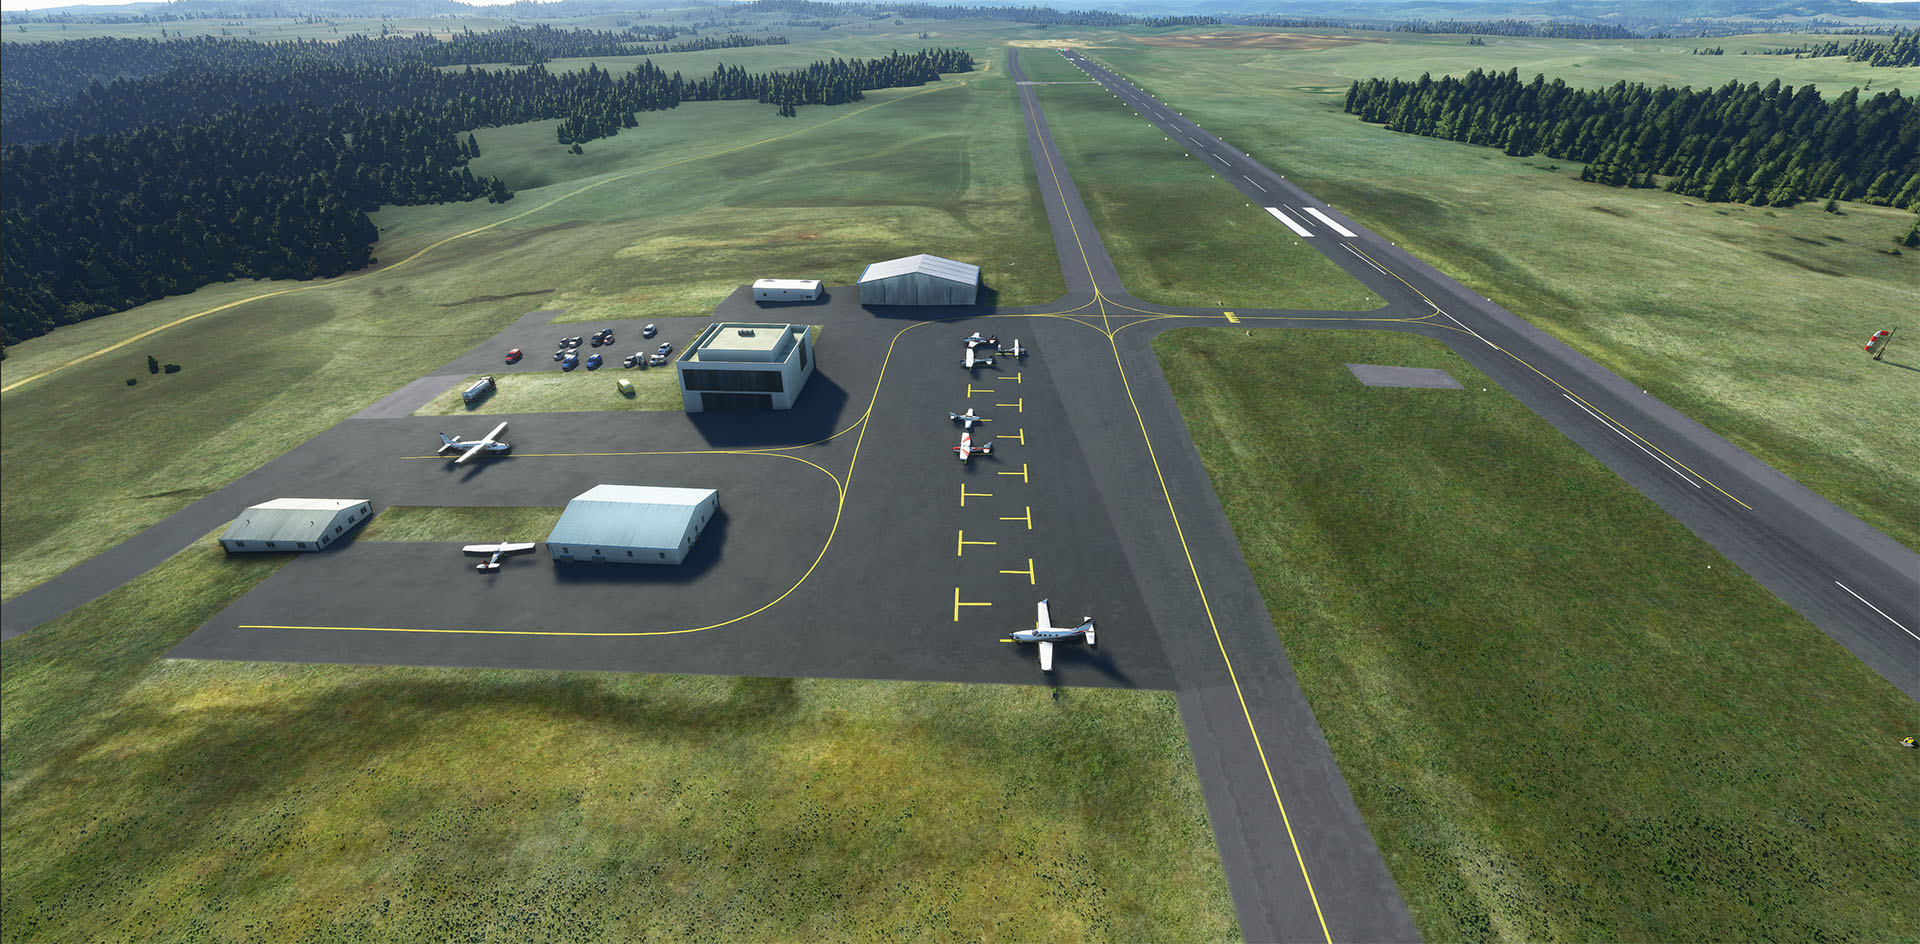 240604_Microsoft_Flight_Simulator_11_09_2020_12_37_14